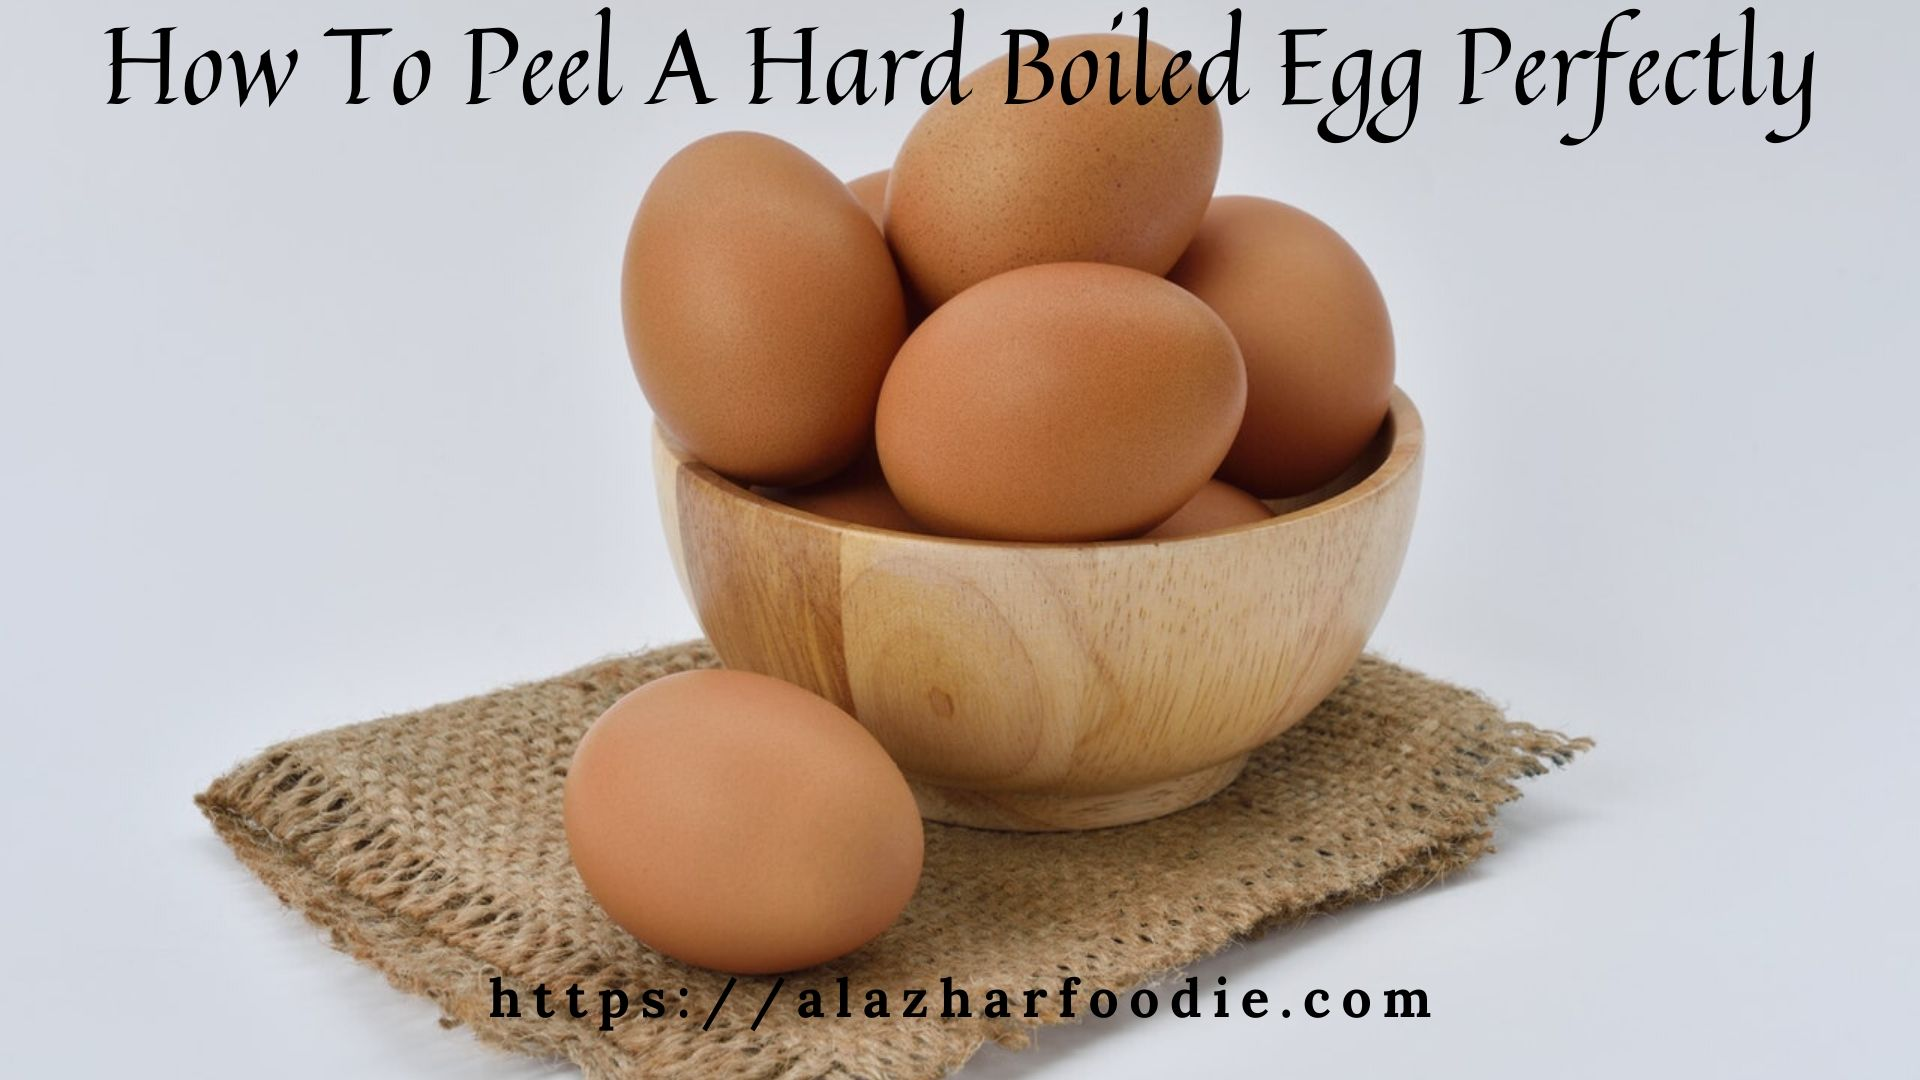 How to peel a hard boiled egg